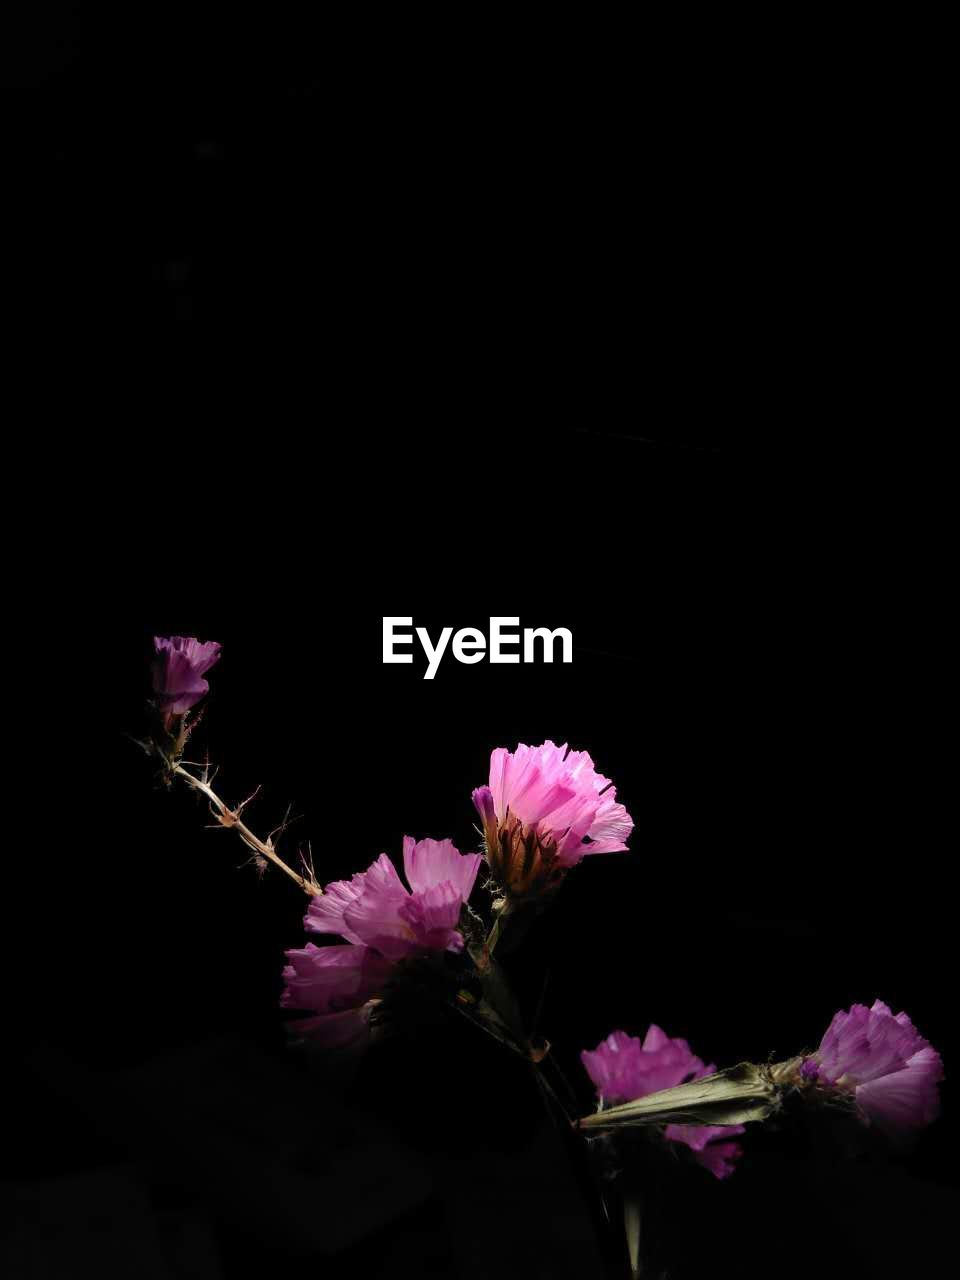 flower, fragility, petal, pink color, freshness, beauty in nature, nature, flower head, growth, no people, botany, purple, close-up, plant, studio shot, springtime, night, blooming, black background, outdoors